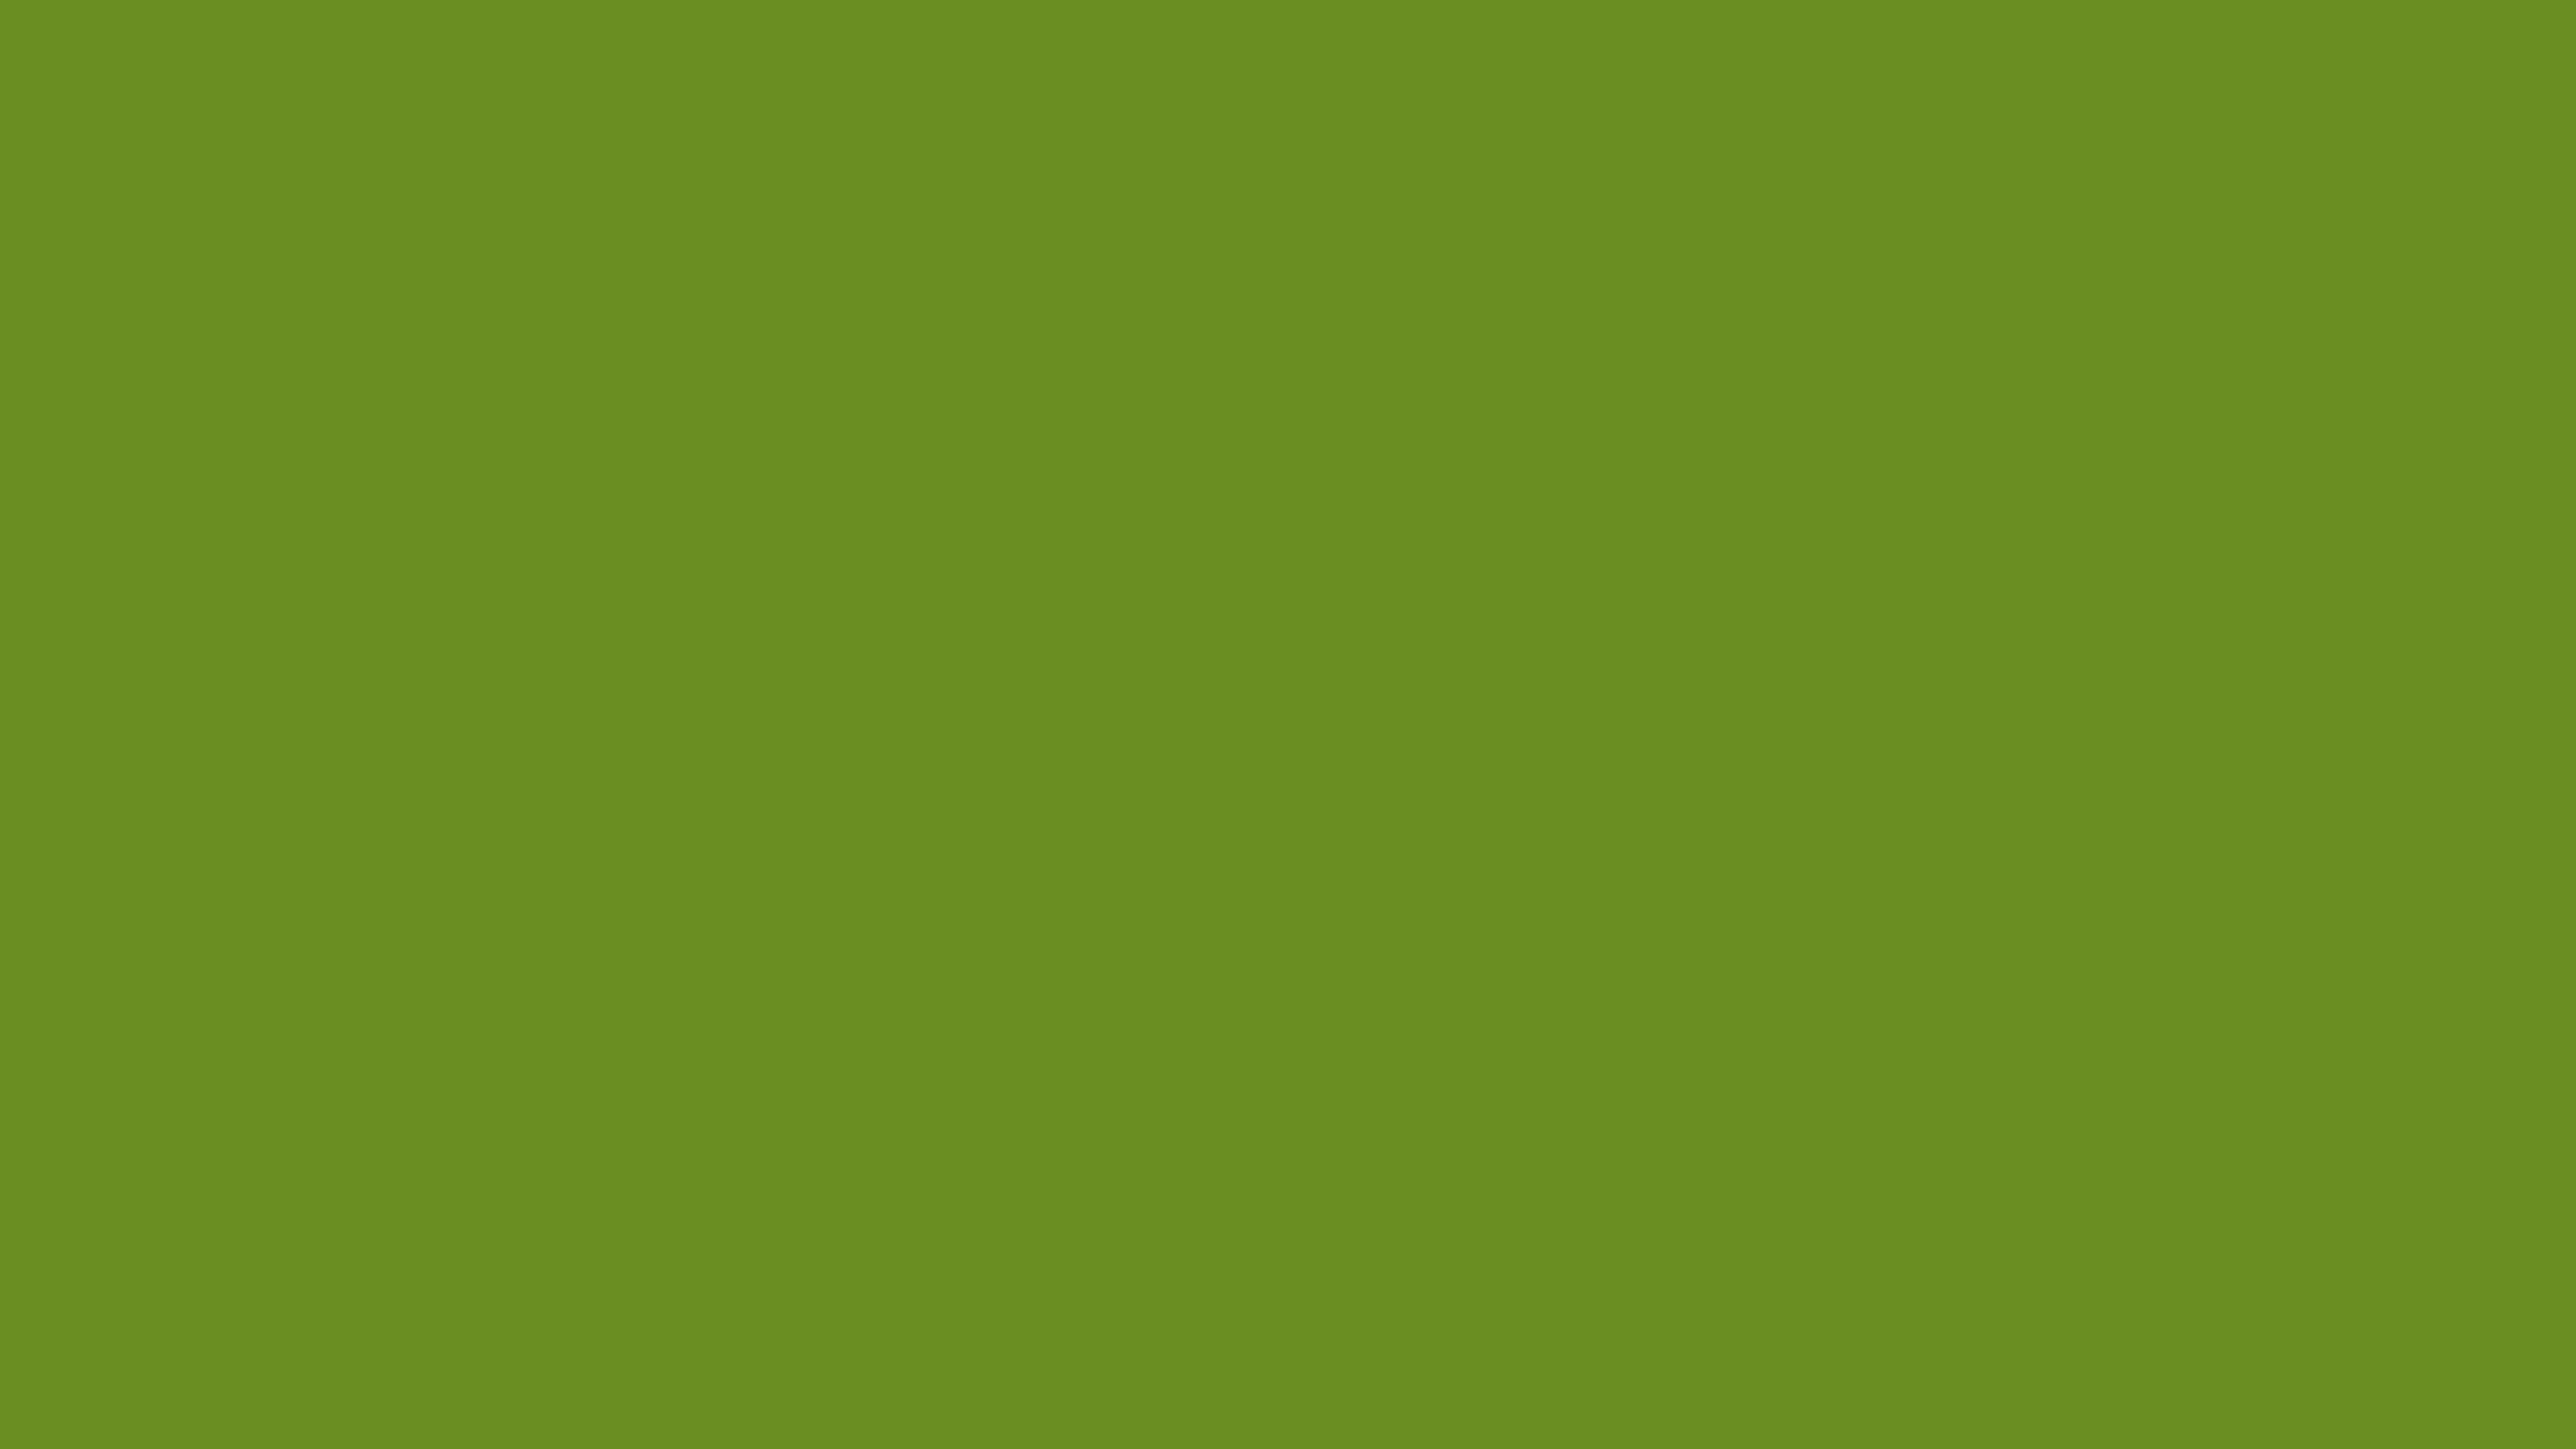 5120x2880 Olive Drab Number Three Solid Color Background